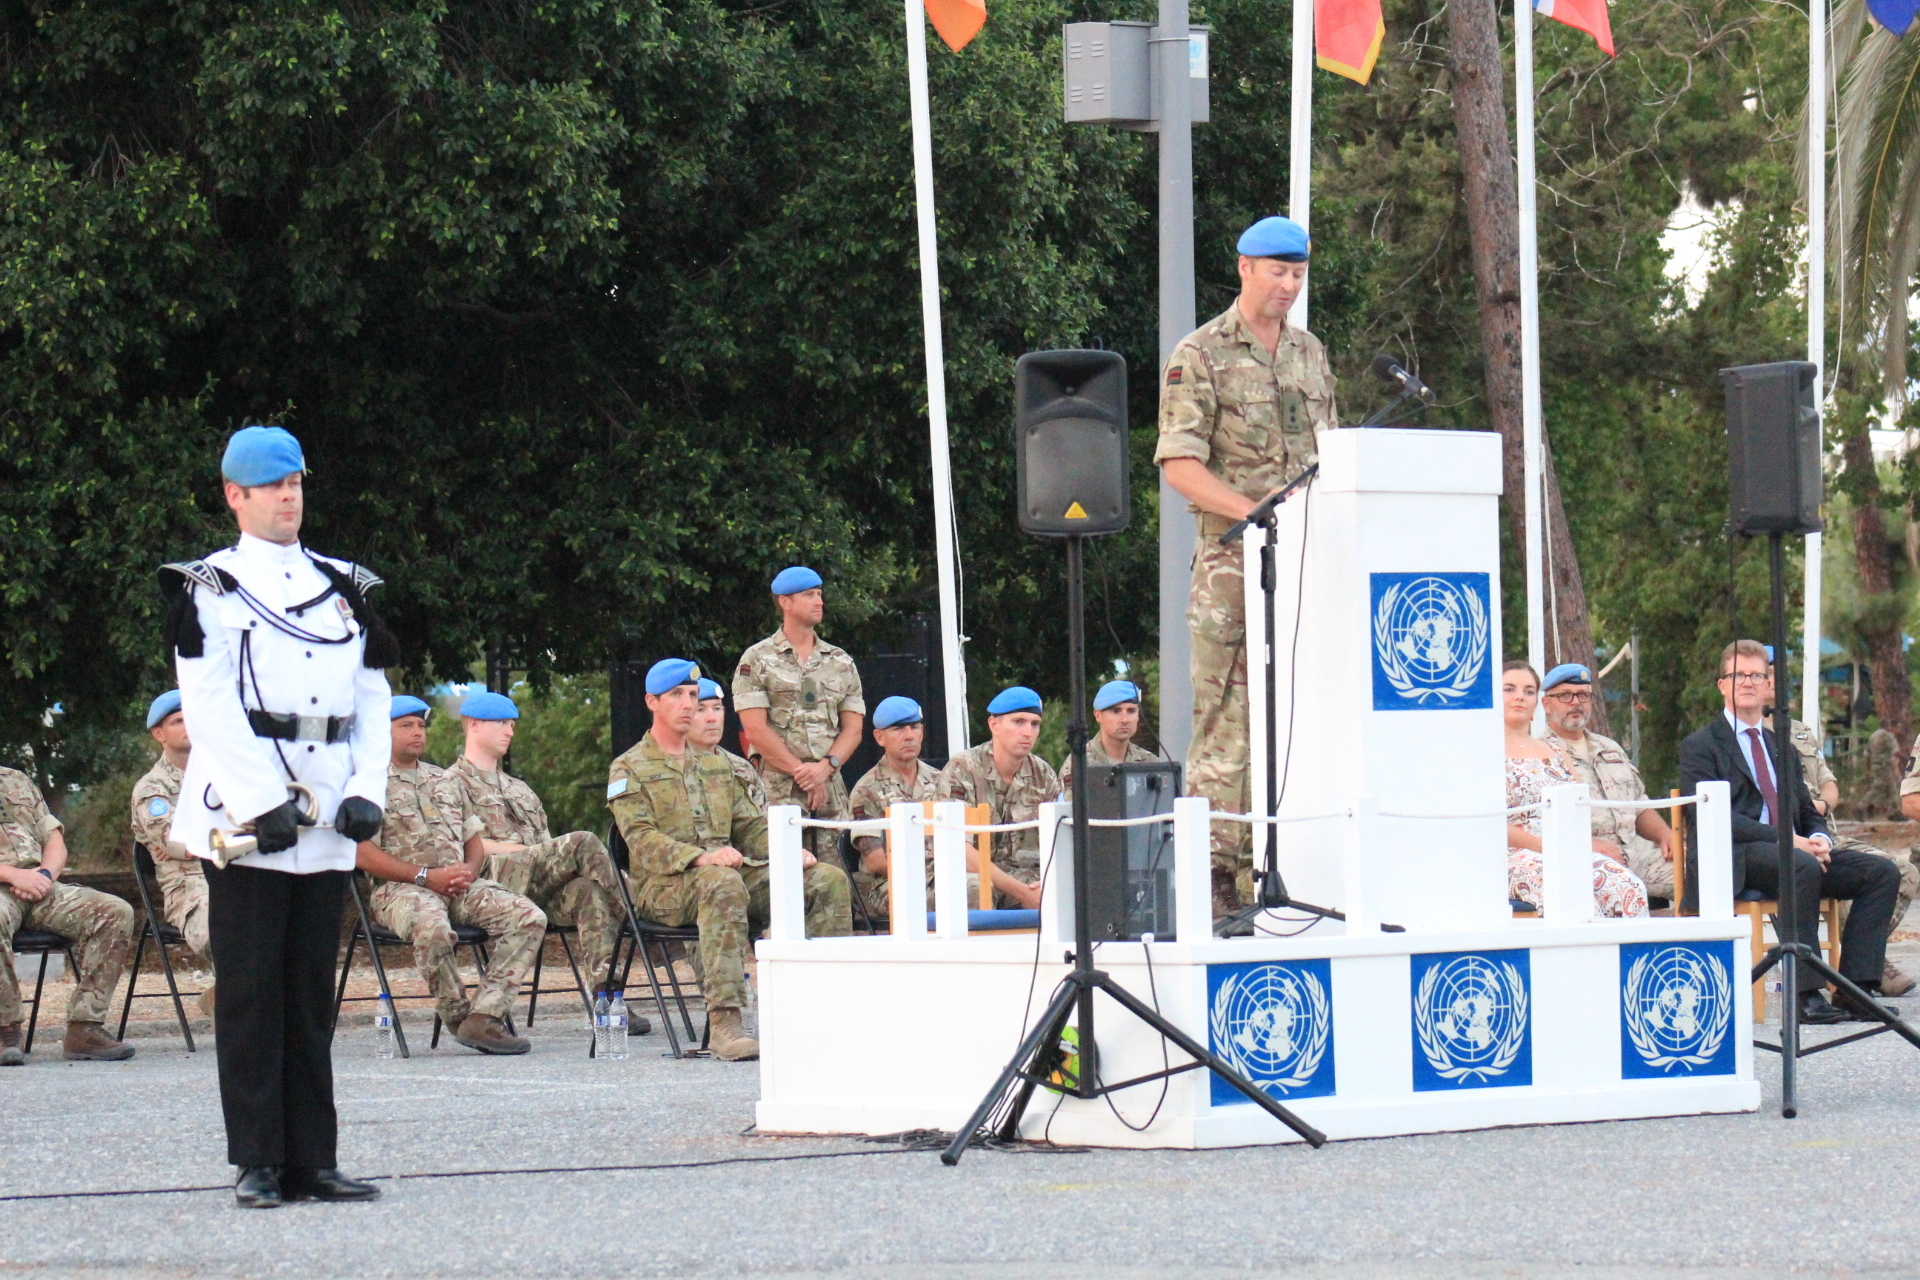 IN THE SERVICE OF PEACE: THE 7 RIFLES BATTLEGROUP RECEIVES THE UNFICYP MEDAL